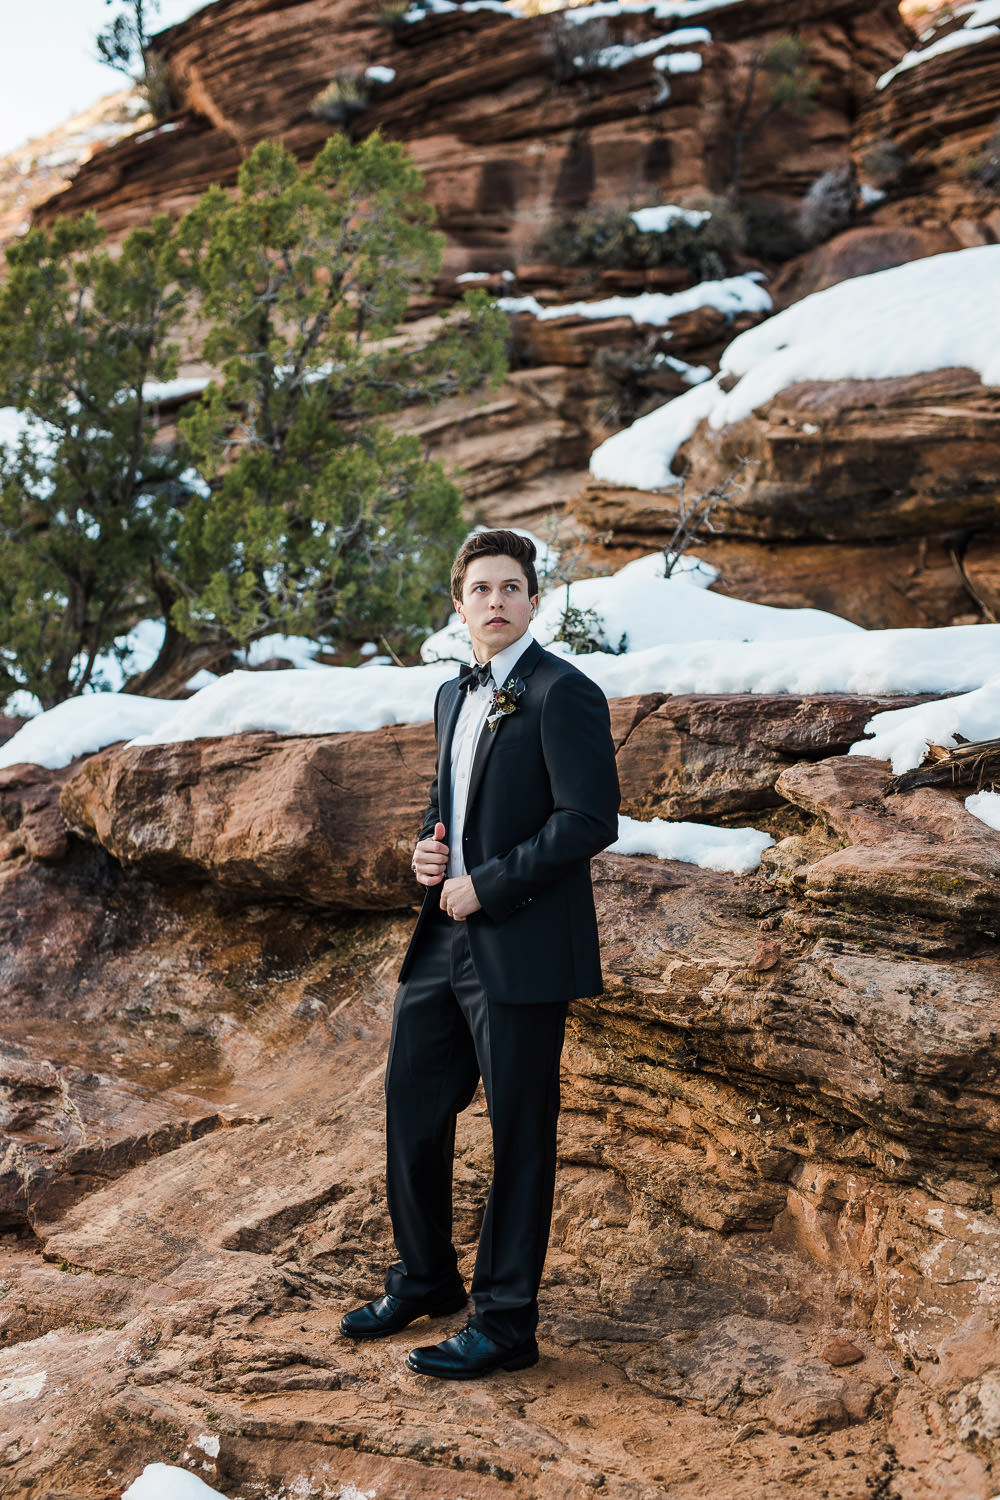 Perfectly Suited by Garth custom tux for classy groom Zion National Park